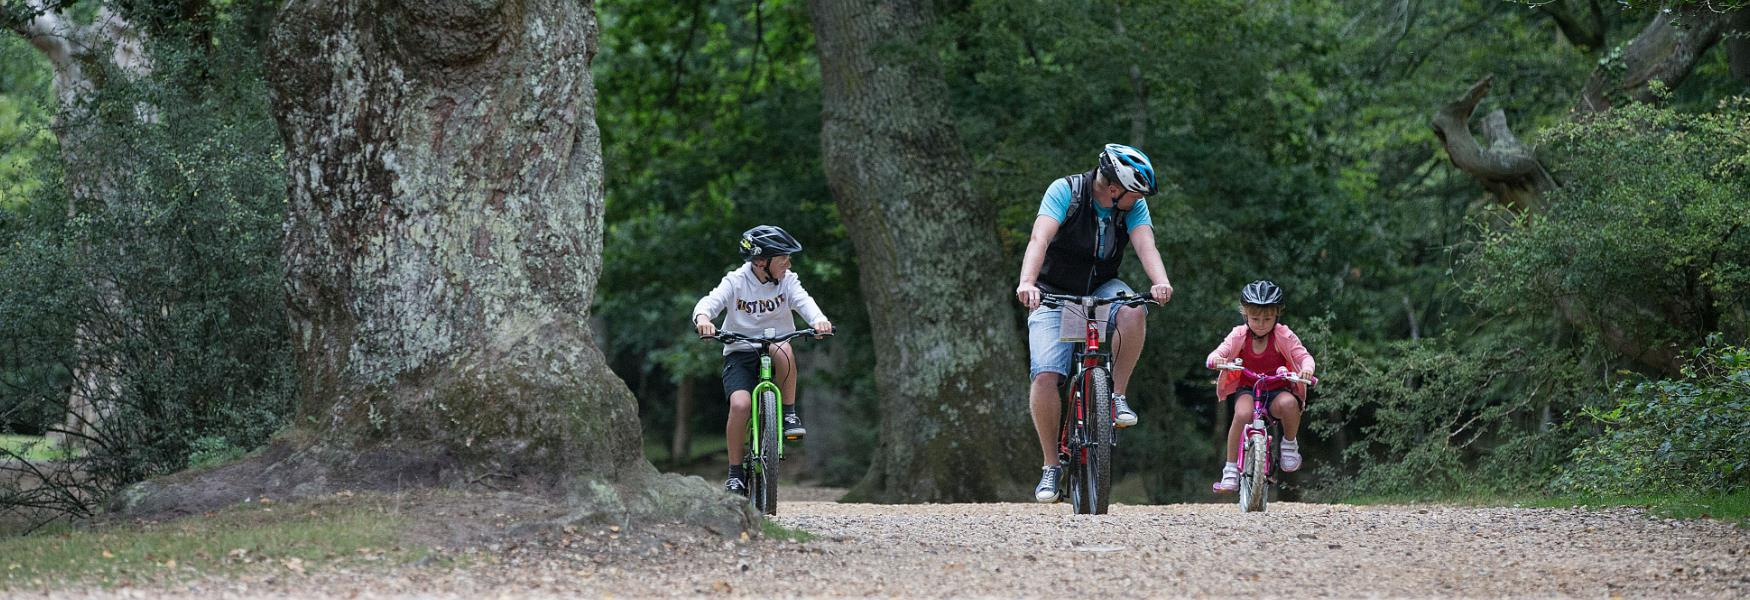 Family Routes - Visit The New Forest